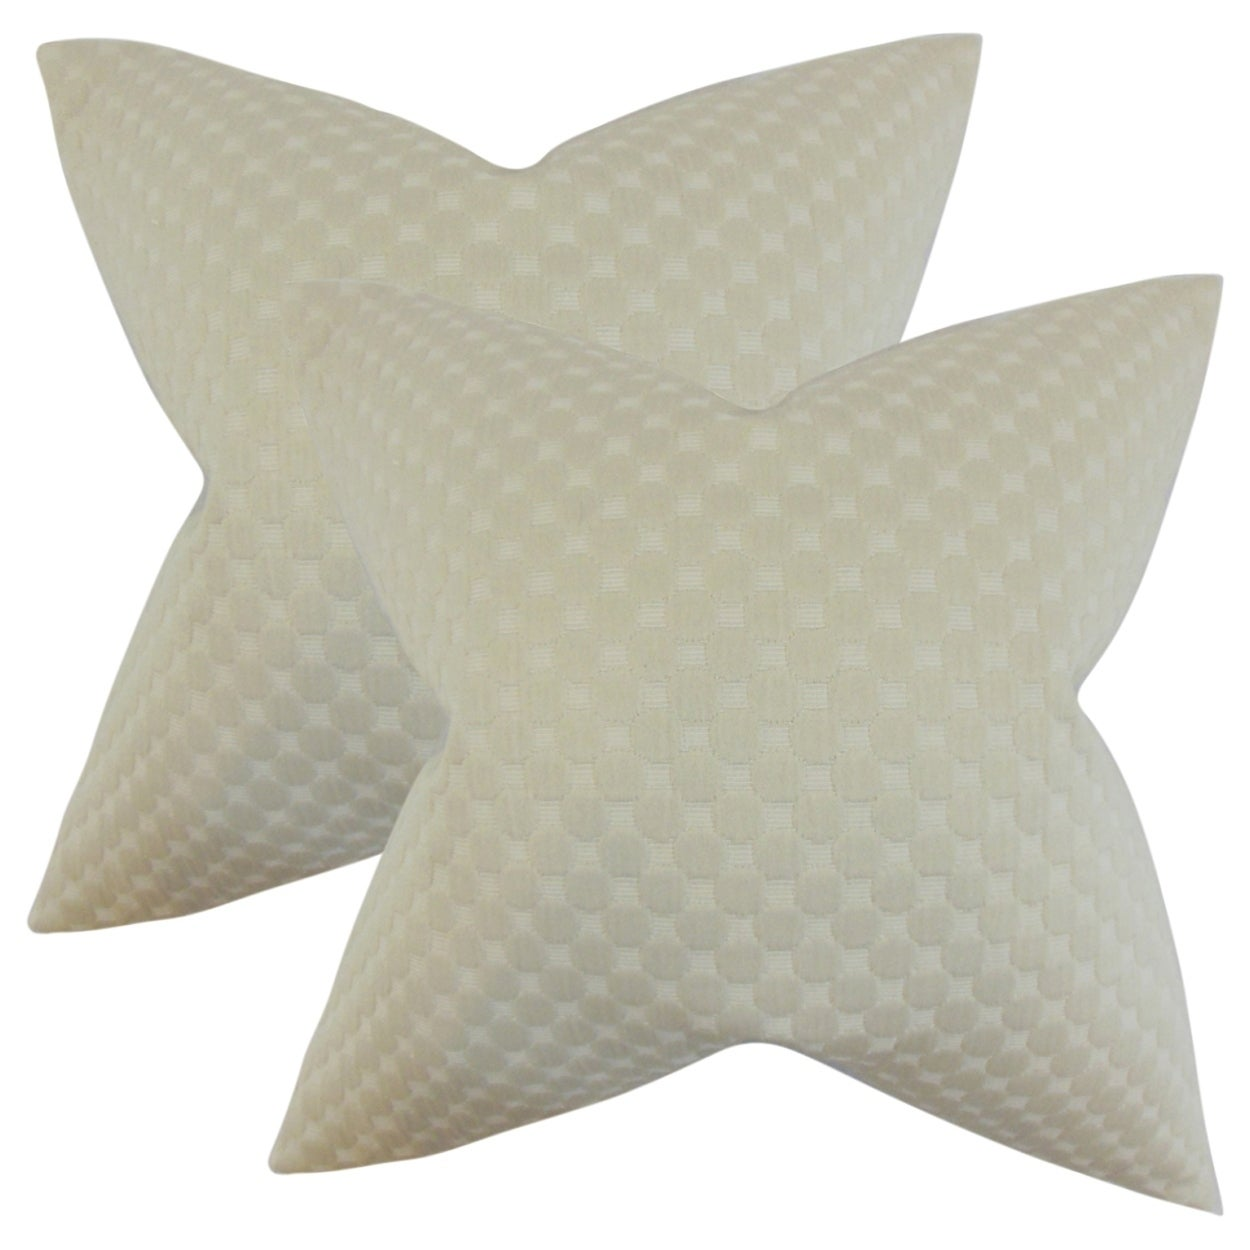 Set of 2  Kasen Solid Throw Pillows in Neutral